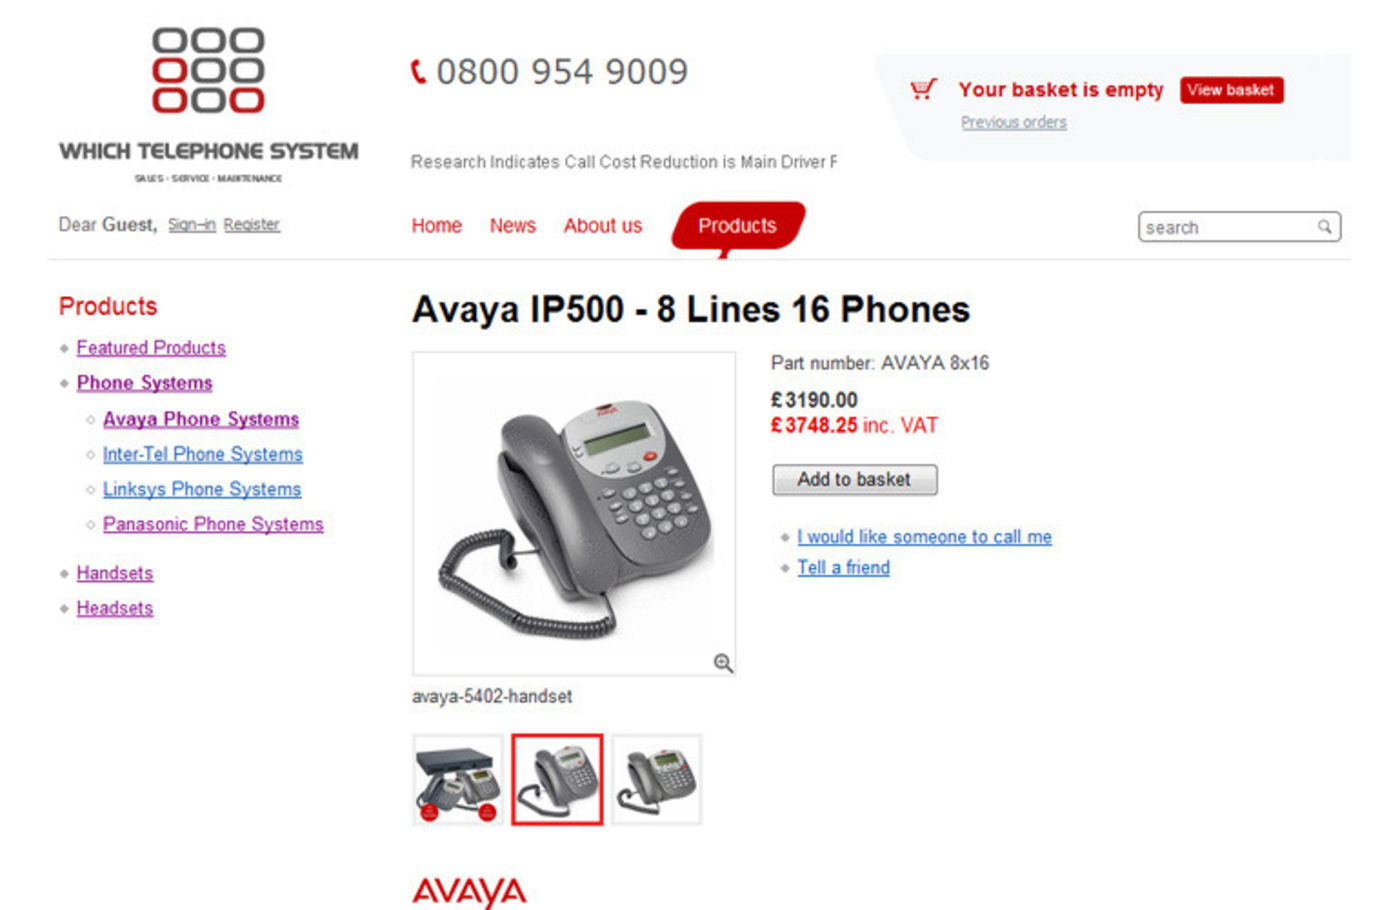 Which Telephone System Product